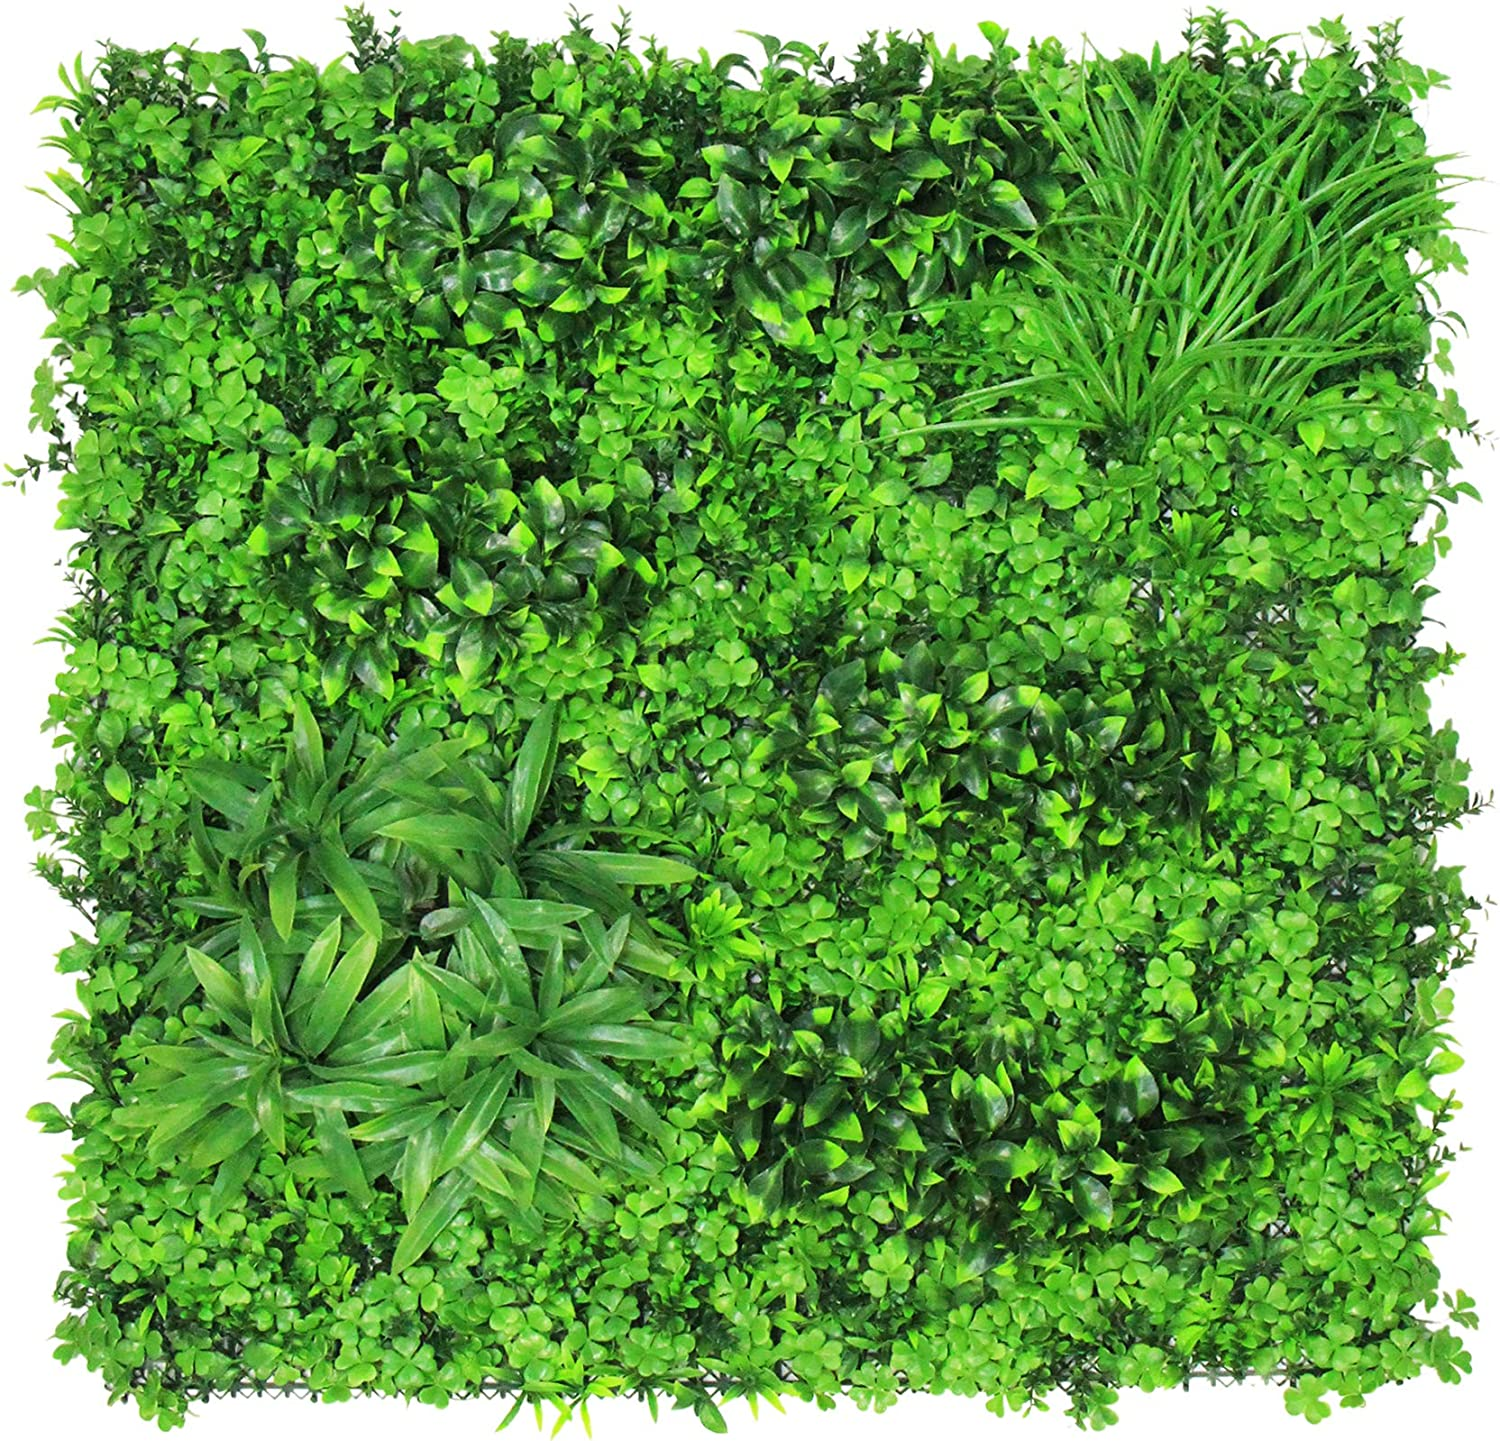 ULAND Artificial Greenery Hedegs Wall, Faux Ivy Plant Backdrop, Verticial Garden Privacy Fence Screen, 40